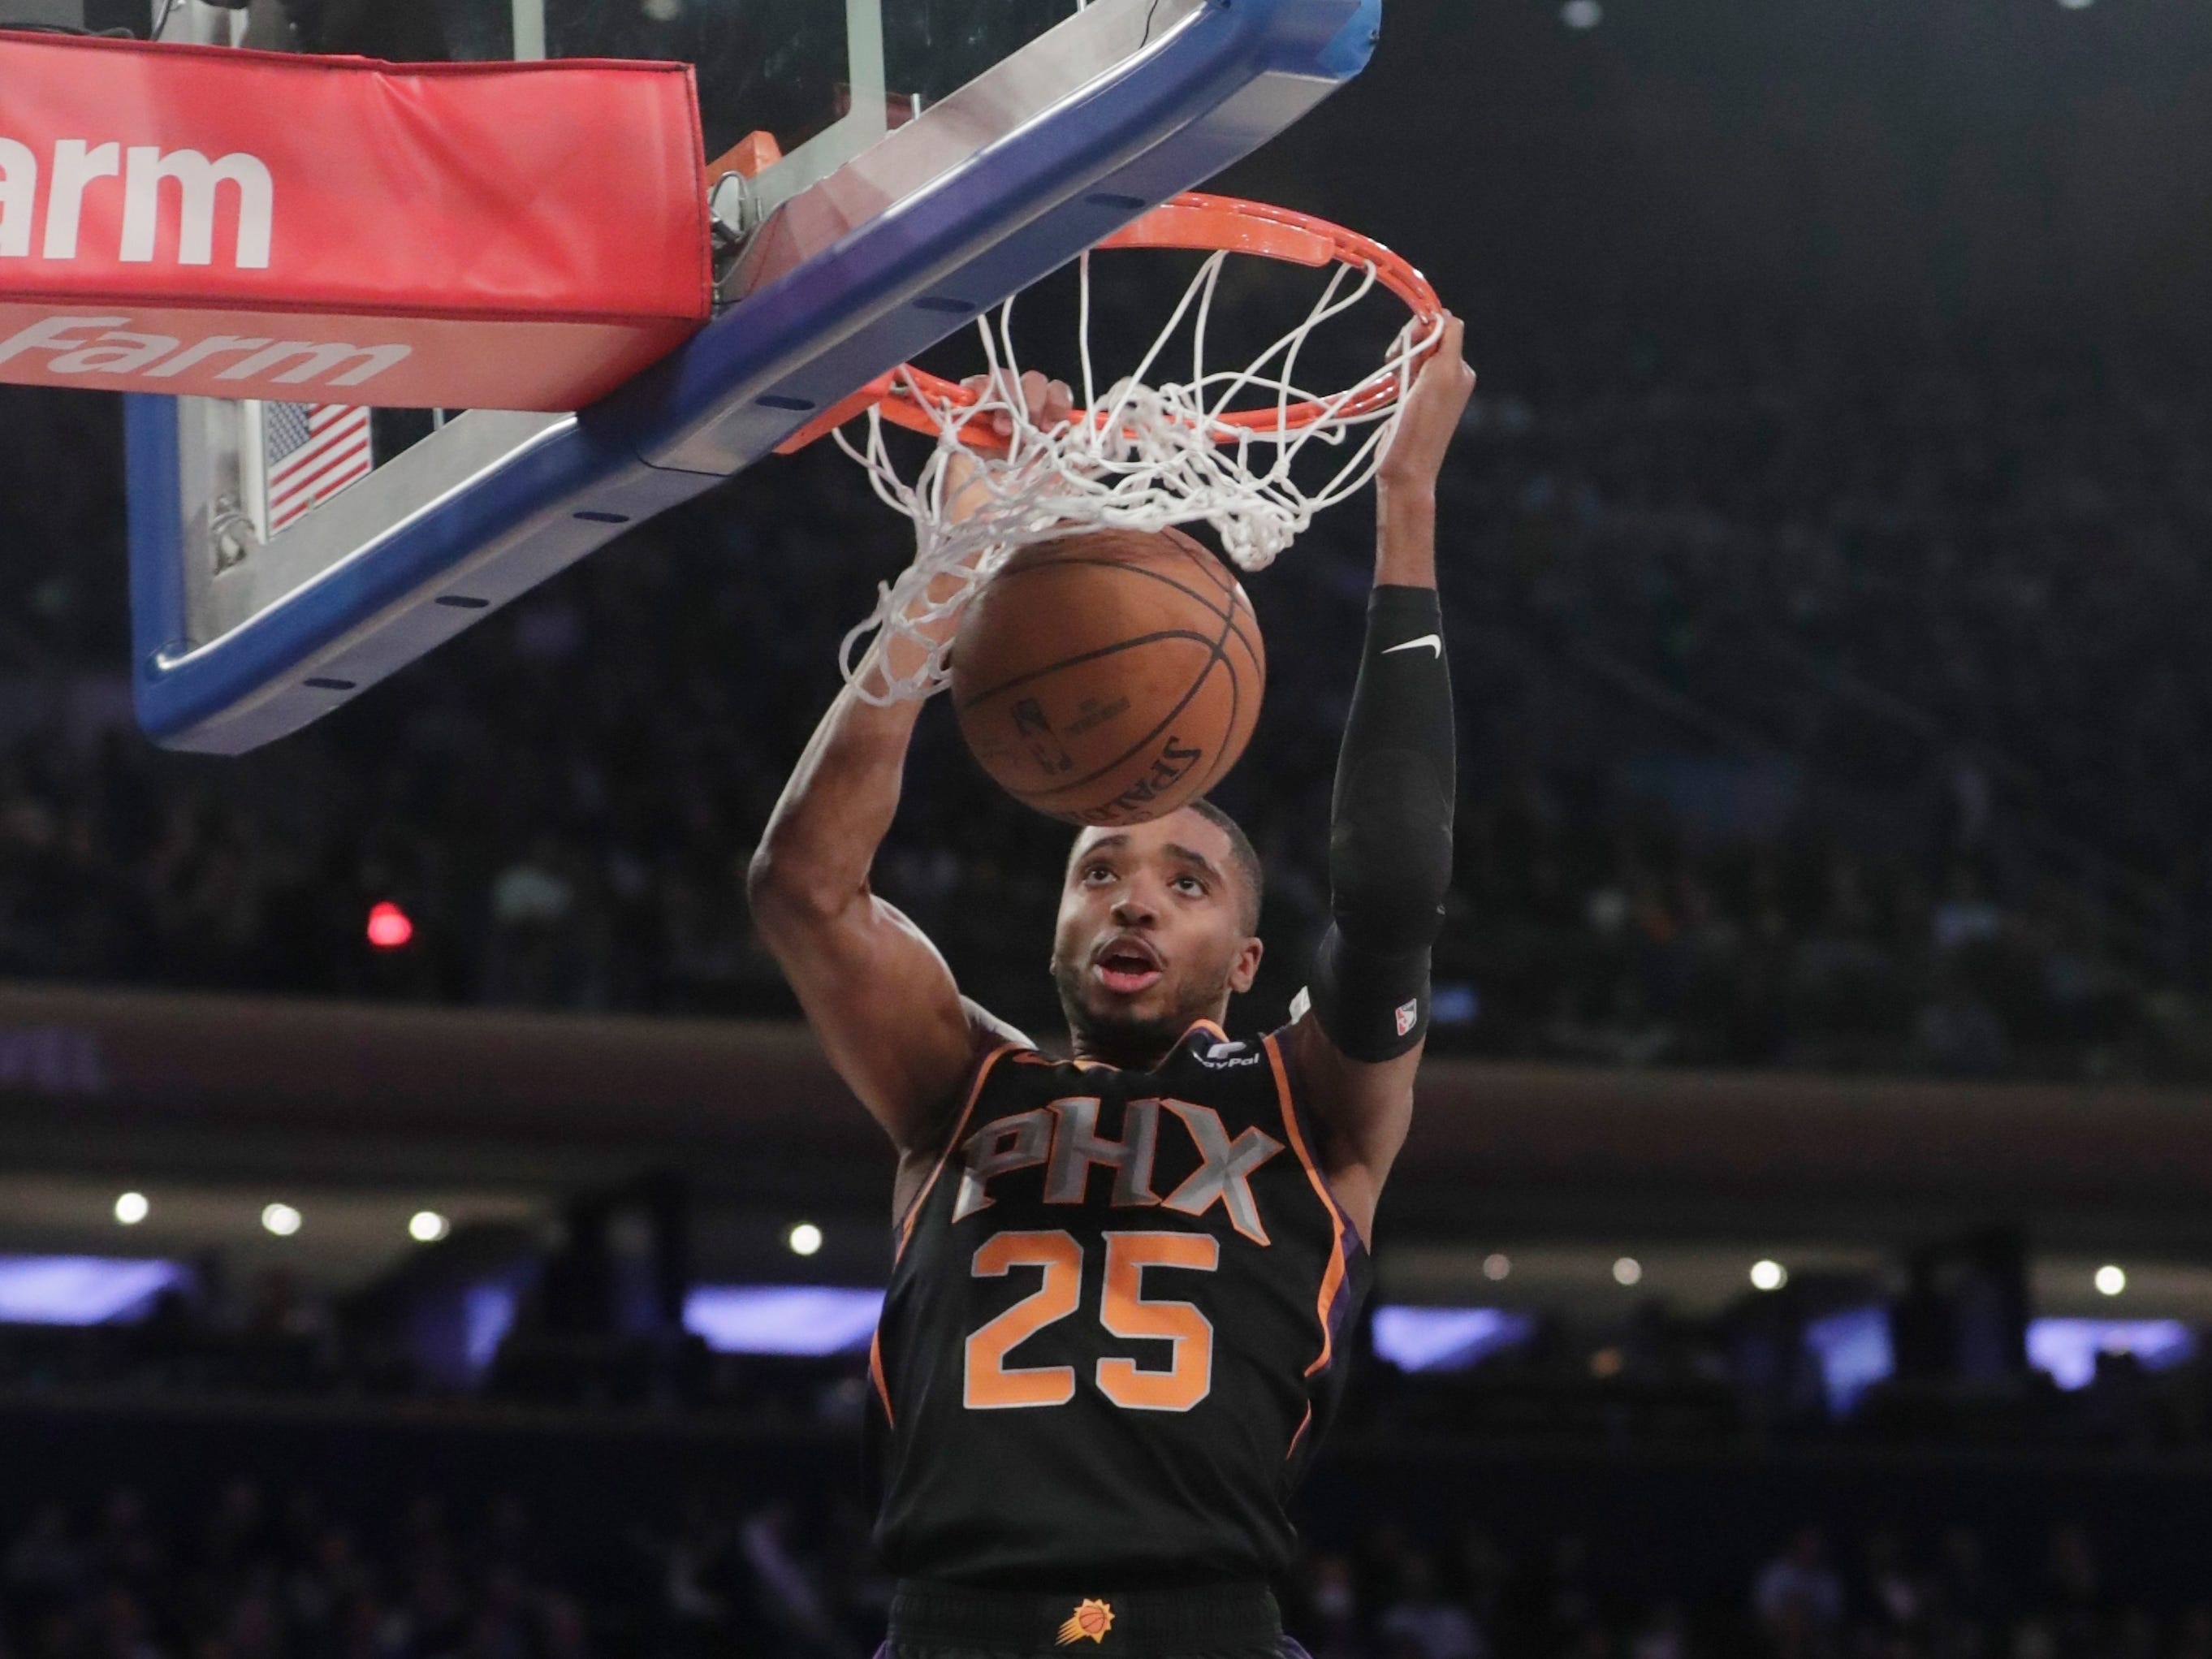 Phoenix Suns' Mikal Bridges (25) dunks during the first half of an NBA basketball game against the New York Knicks, Monday, Dec. 17, 2018, in New York.